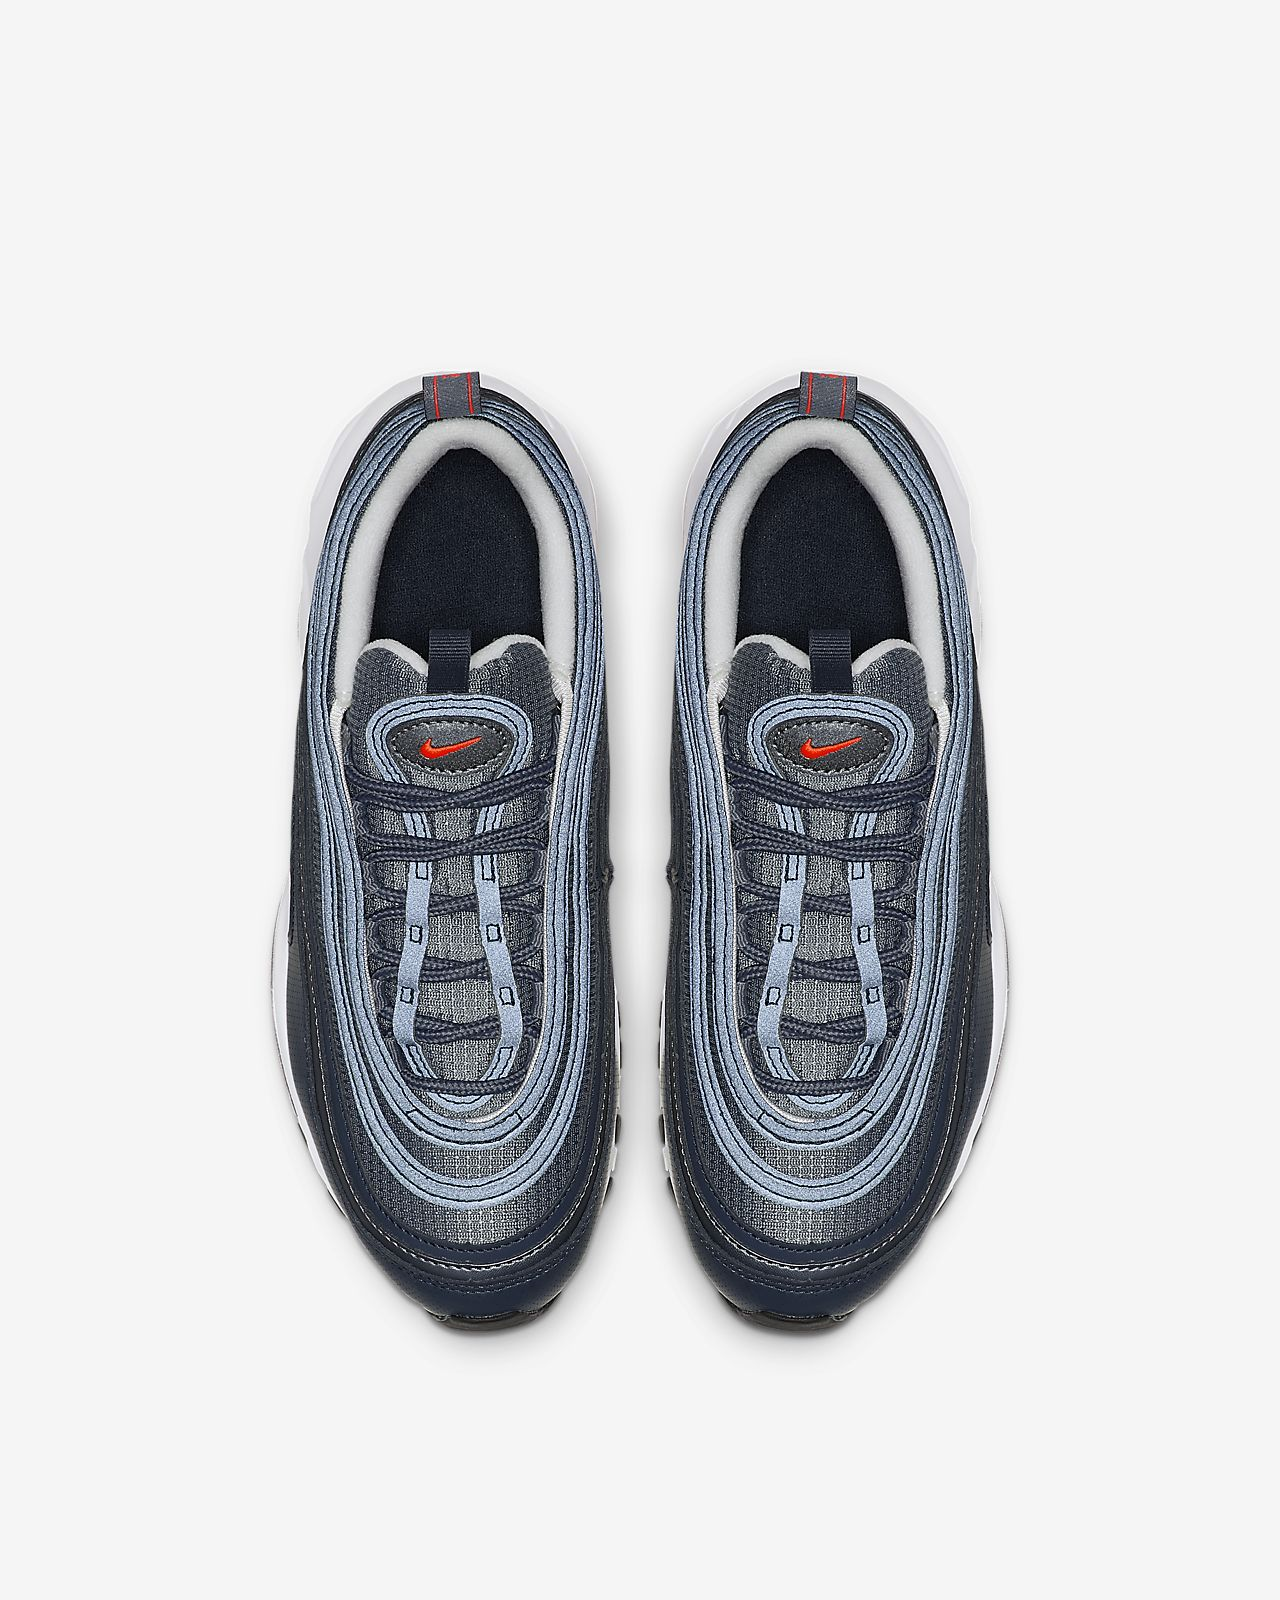 undefeated x air max 97 Tumblr